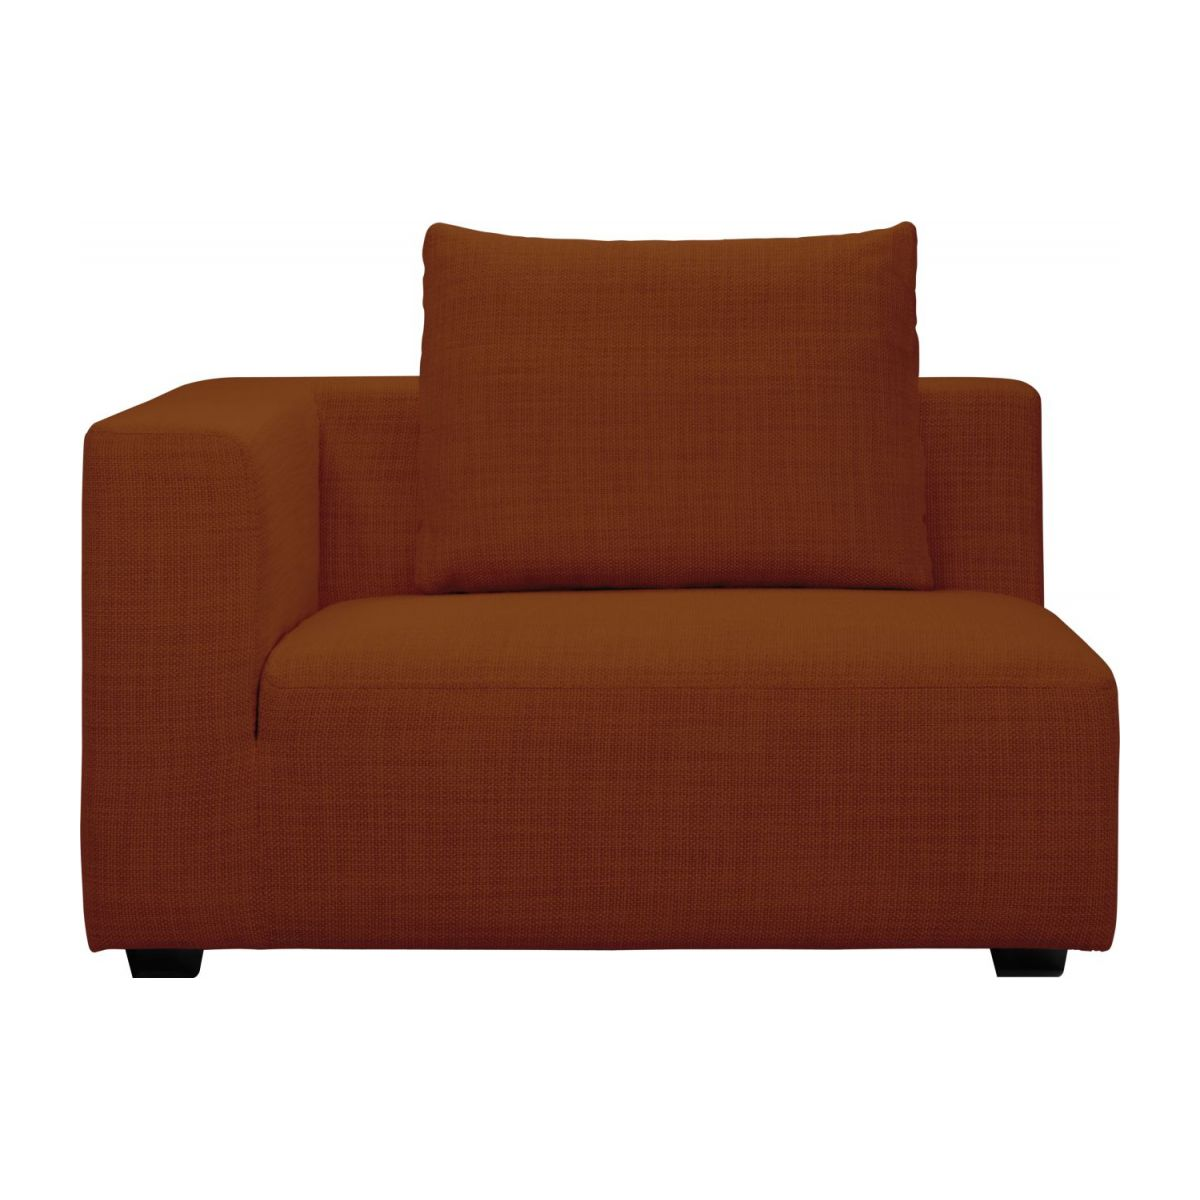 1,5 seater sofa with left armrest in Fasoli fabric, warm red rock n°2